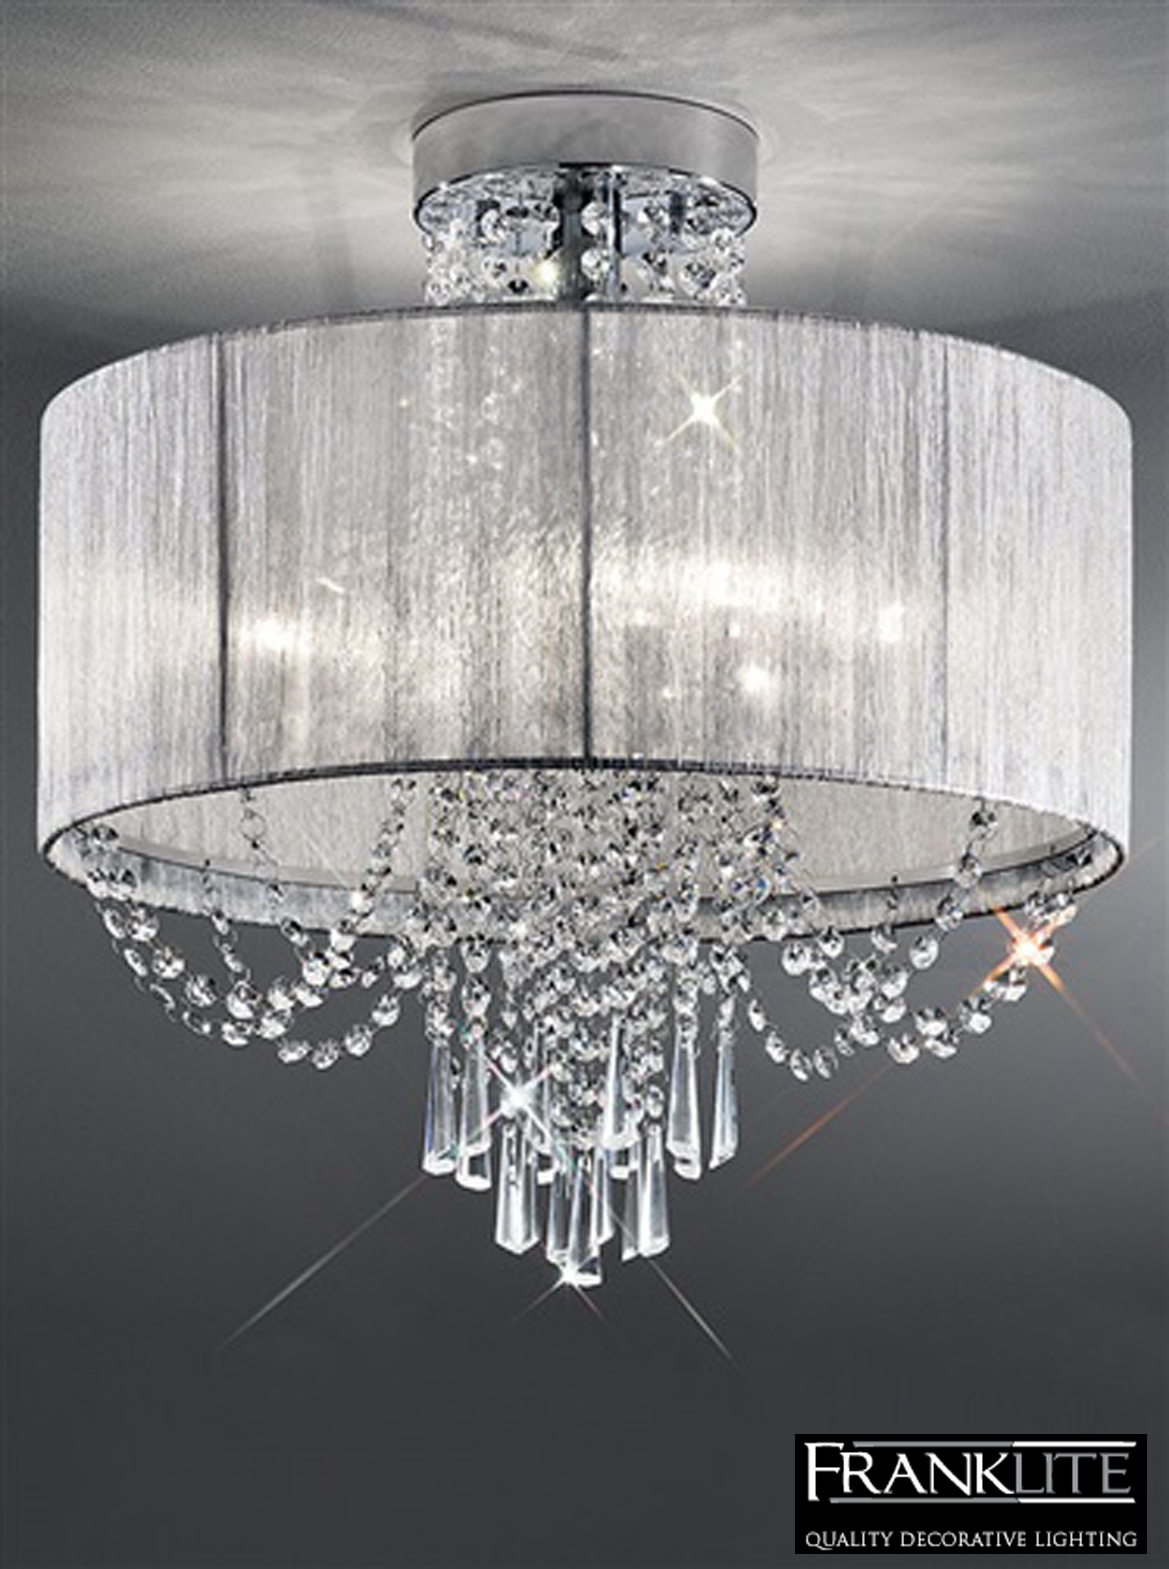 Franklite Empress 6 Light Flush Crystal Chrome Ceiling Fitting Inside Flush Fitting Chandeliers (Image 10 of 15)